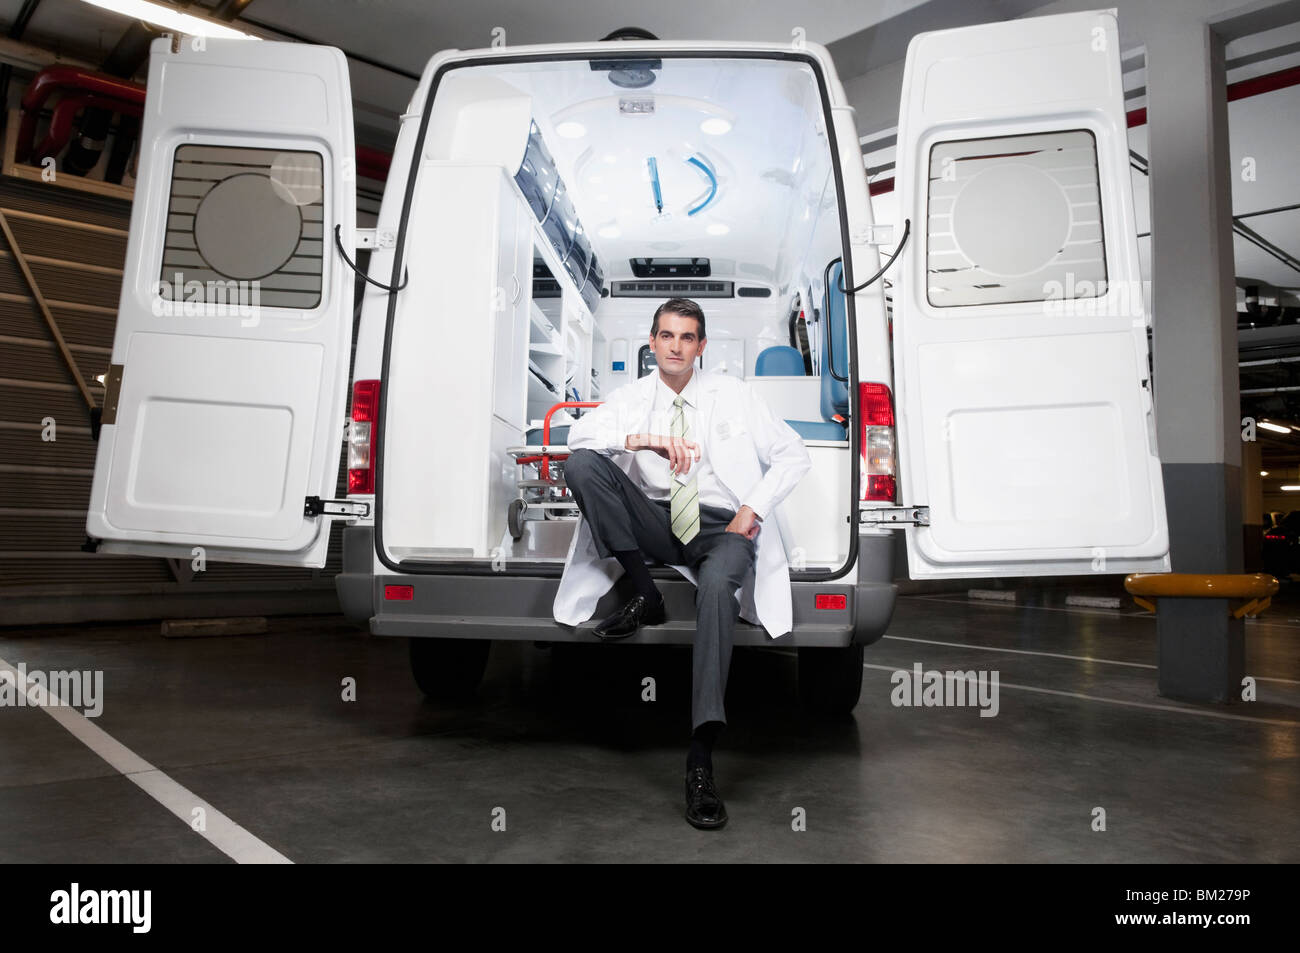 Doctor sitting in an ambulance - Stock Image